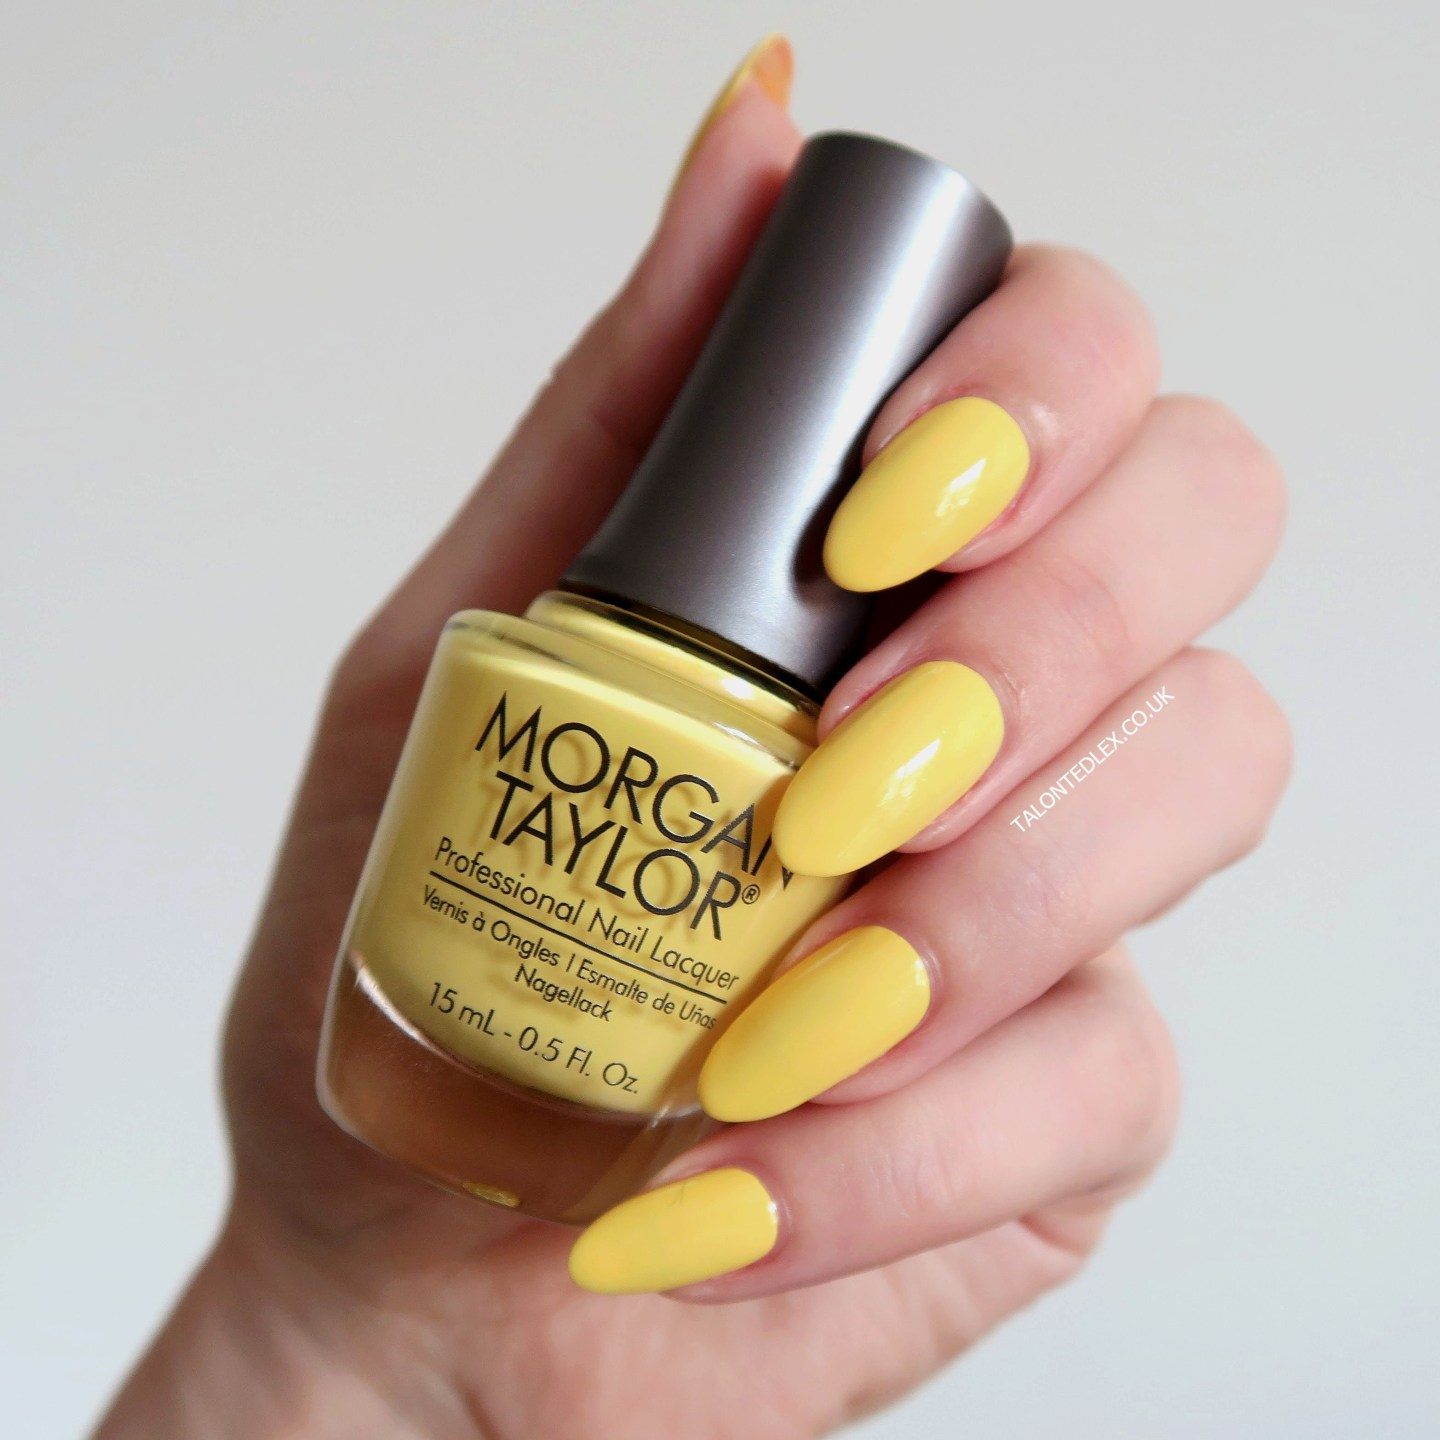 Repin and click to see the full Morgan Taylor Rocketman collection, including 'Glow Like A Star' - a light yellow creme polish. New Morgan Taylor nail polish range. #talontedlex #morgantaylor #yellownails